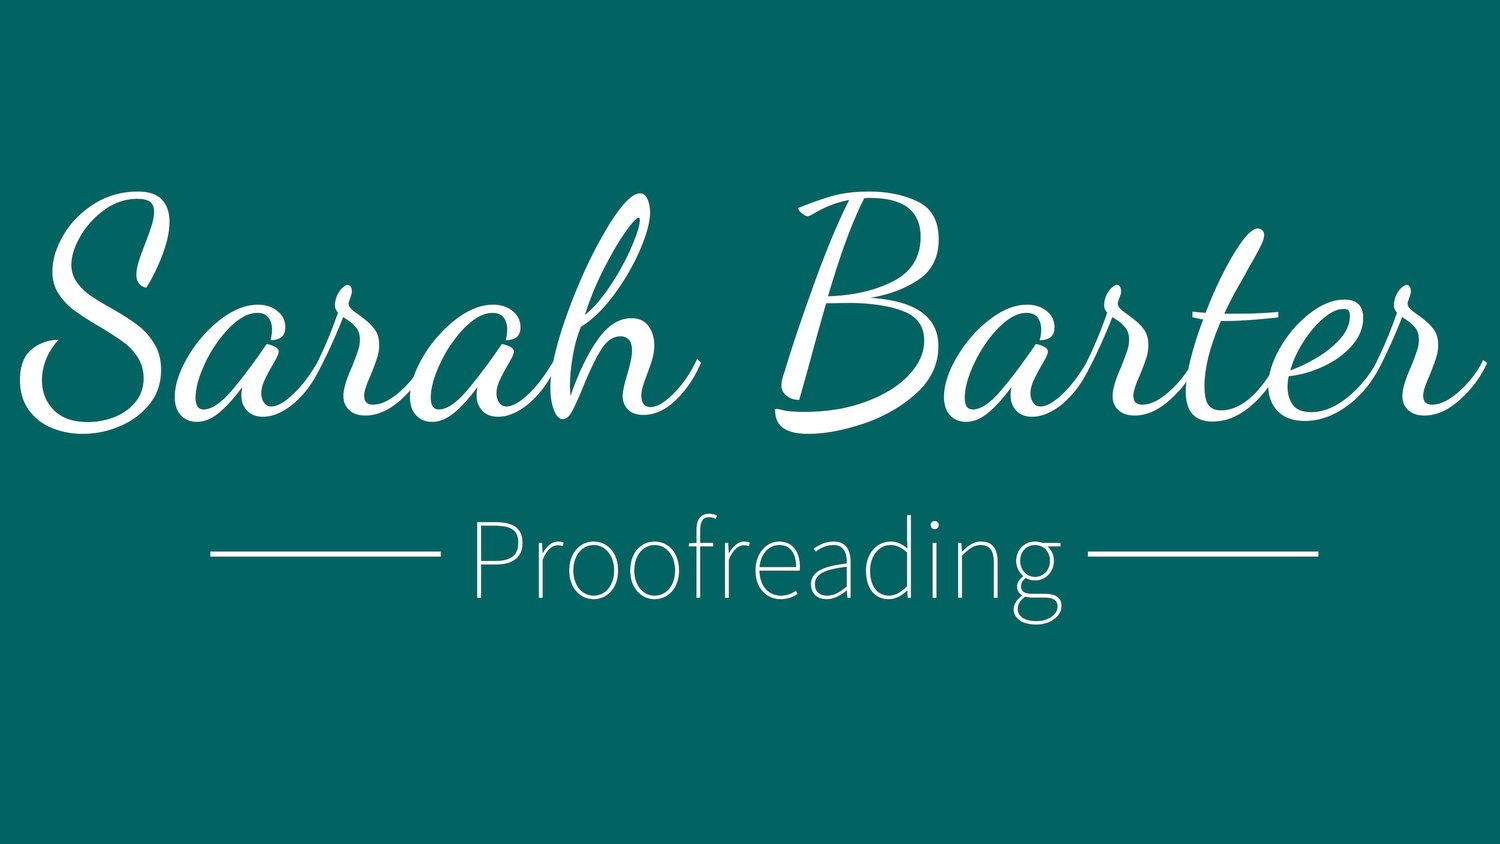 Sarah Barter Proofreading